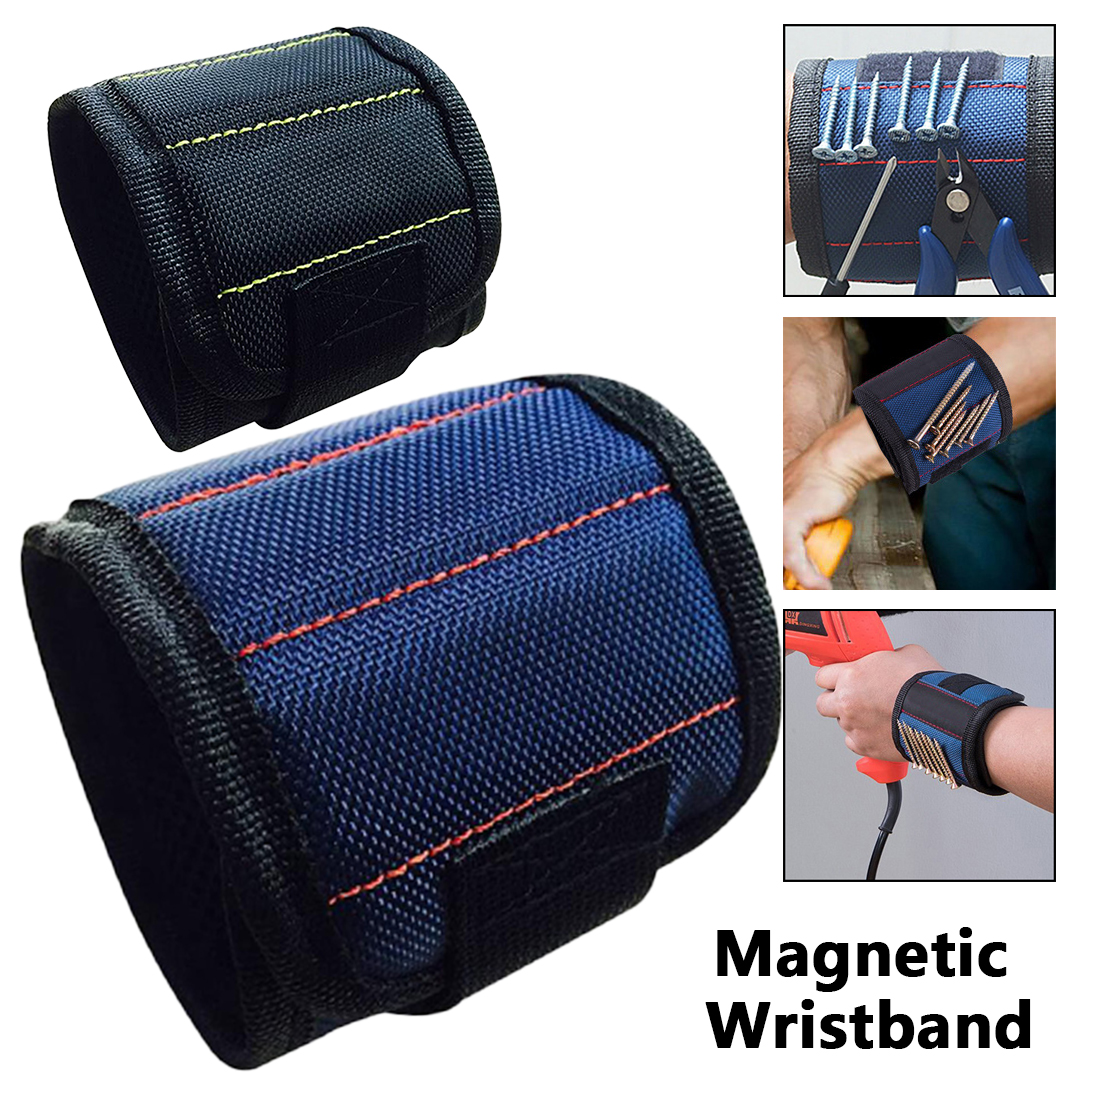 Adjustable Tool Wrist Bands Strong Magnet Wristband Tool for Screws Nails Nuts Bolts Hand Free Drill Bit Holder for Home Repair